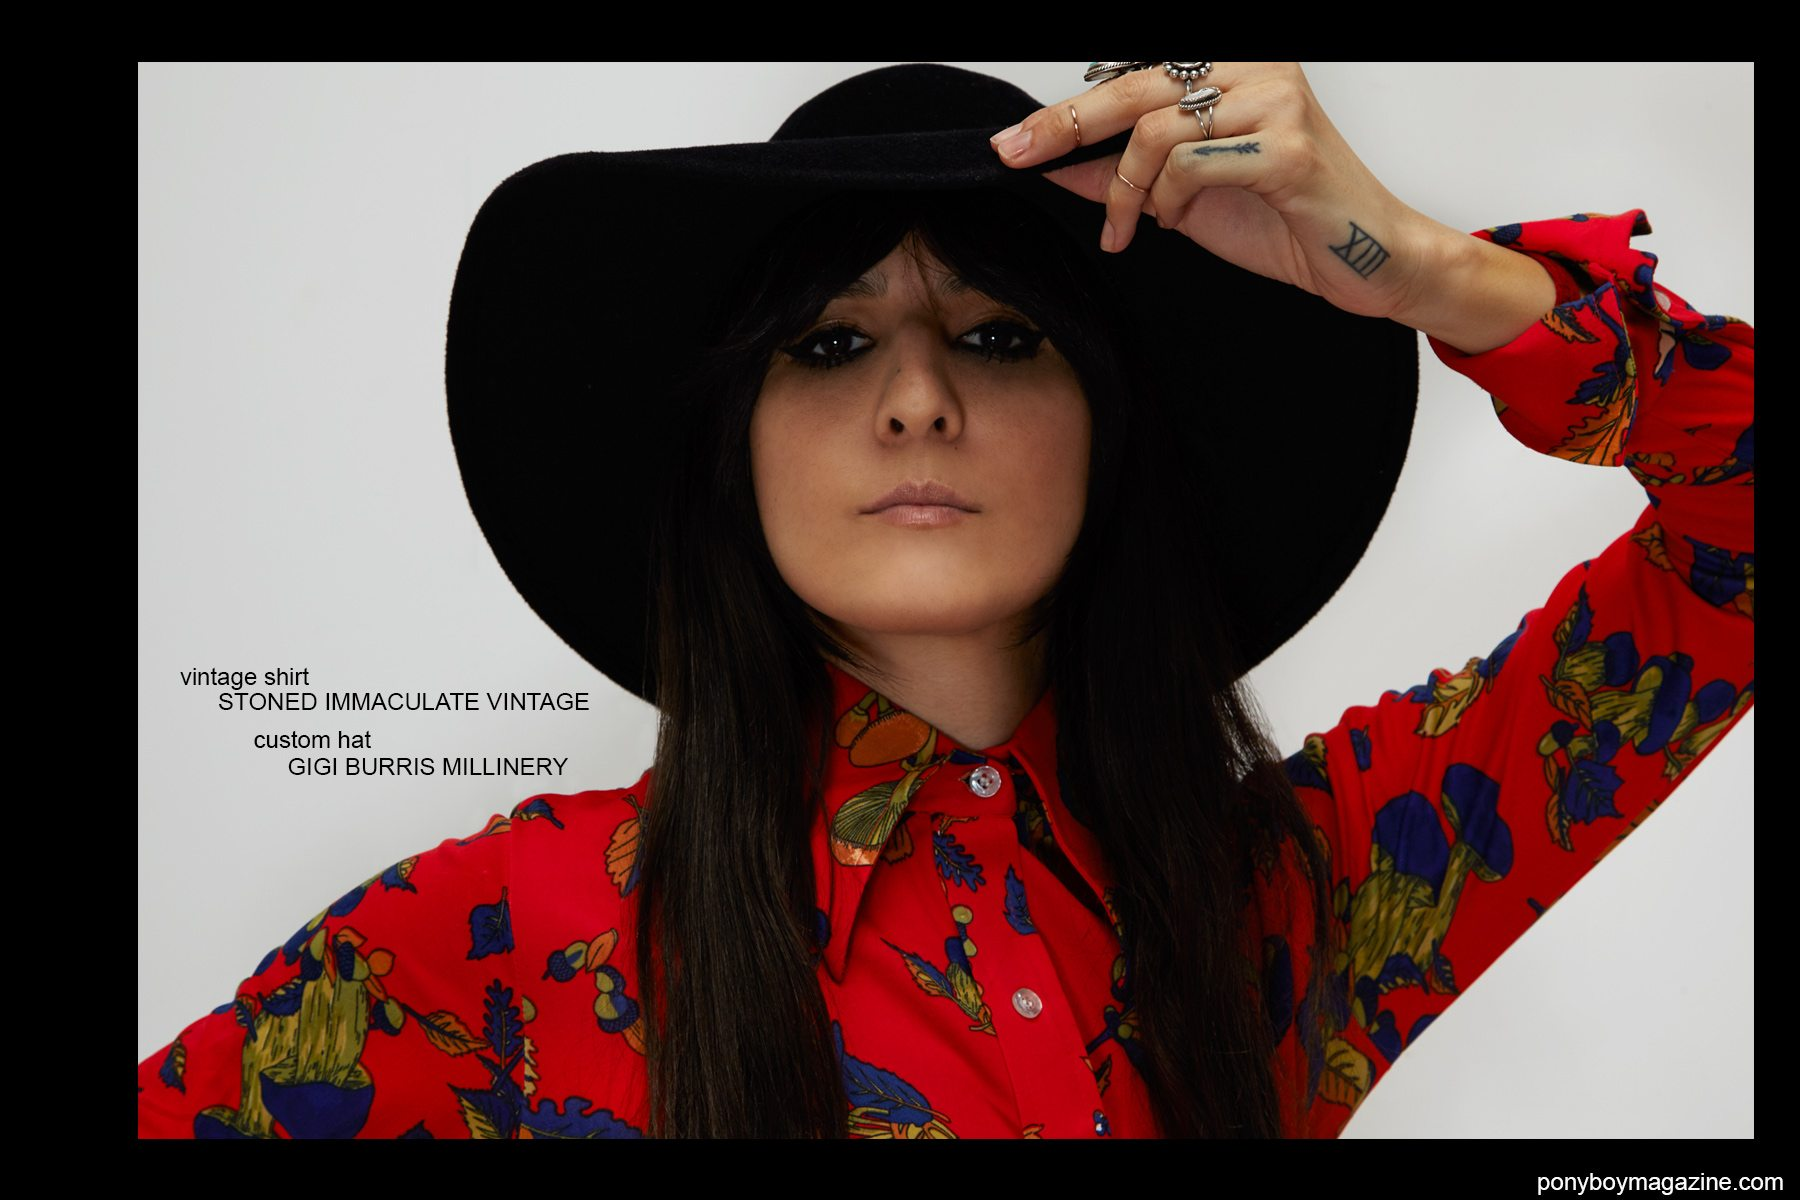 Kristin Gallegos, photographed by Alexander Thompson in a vintage shirt from Stoned Immaculate Vintage, and custom hat by Gigi Burris Millinery. Ponyboy magazine NY.